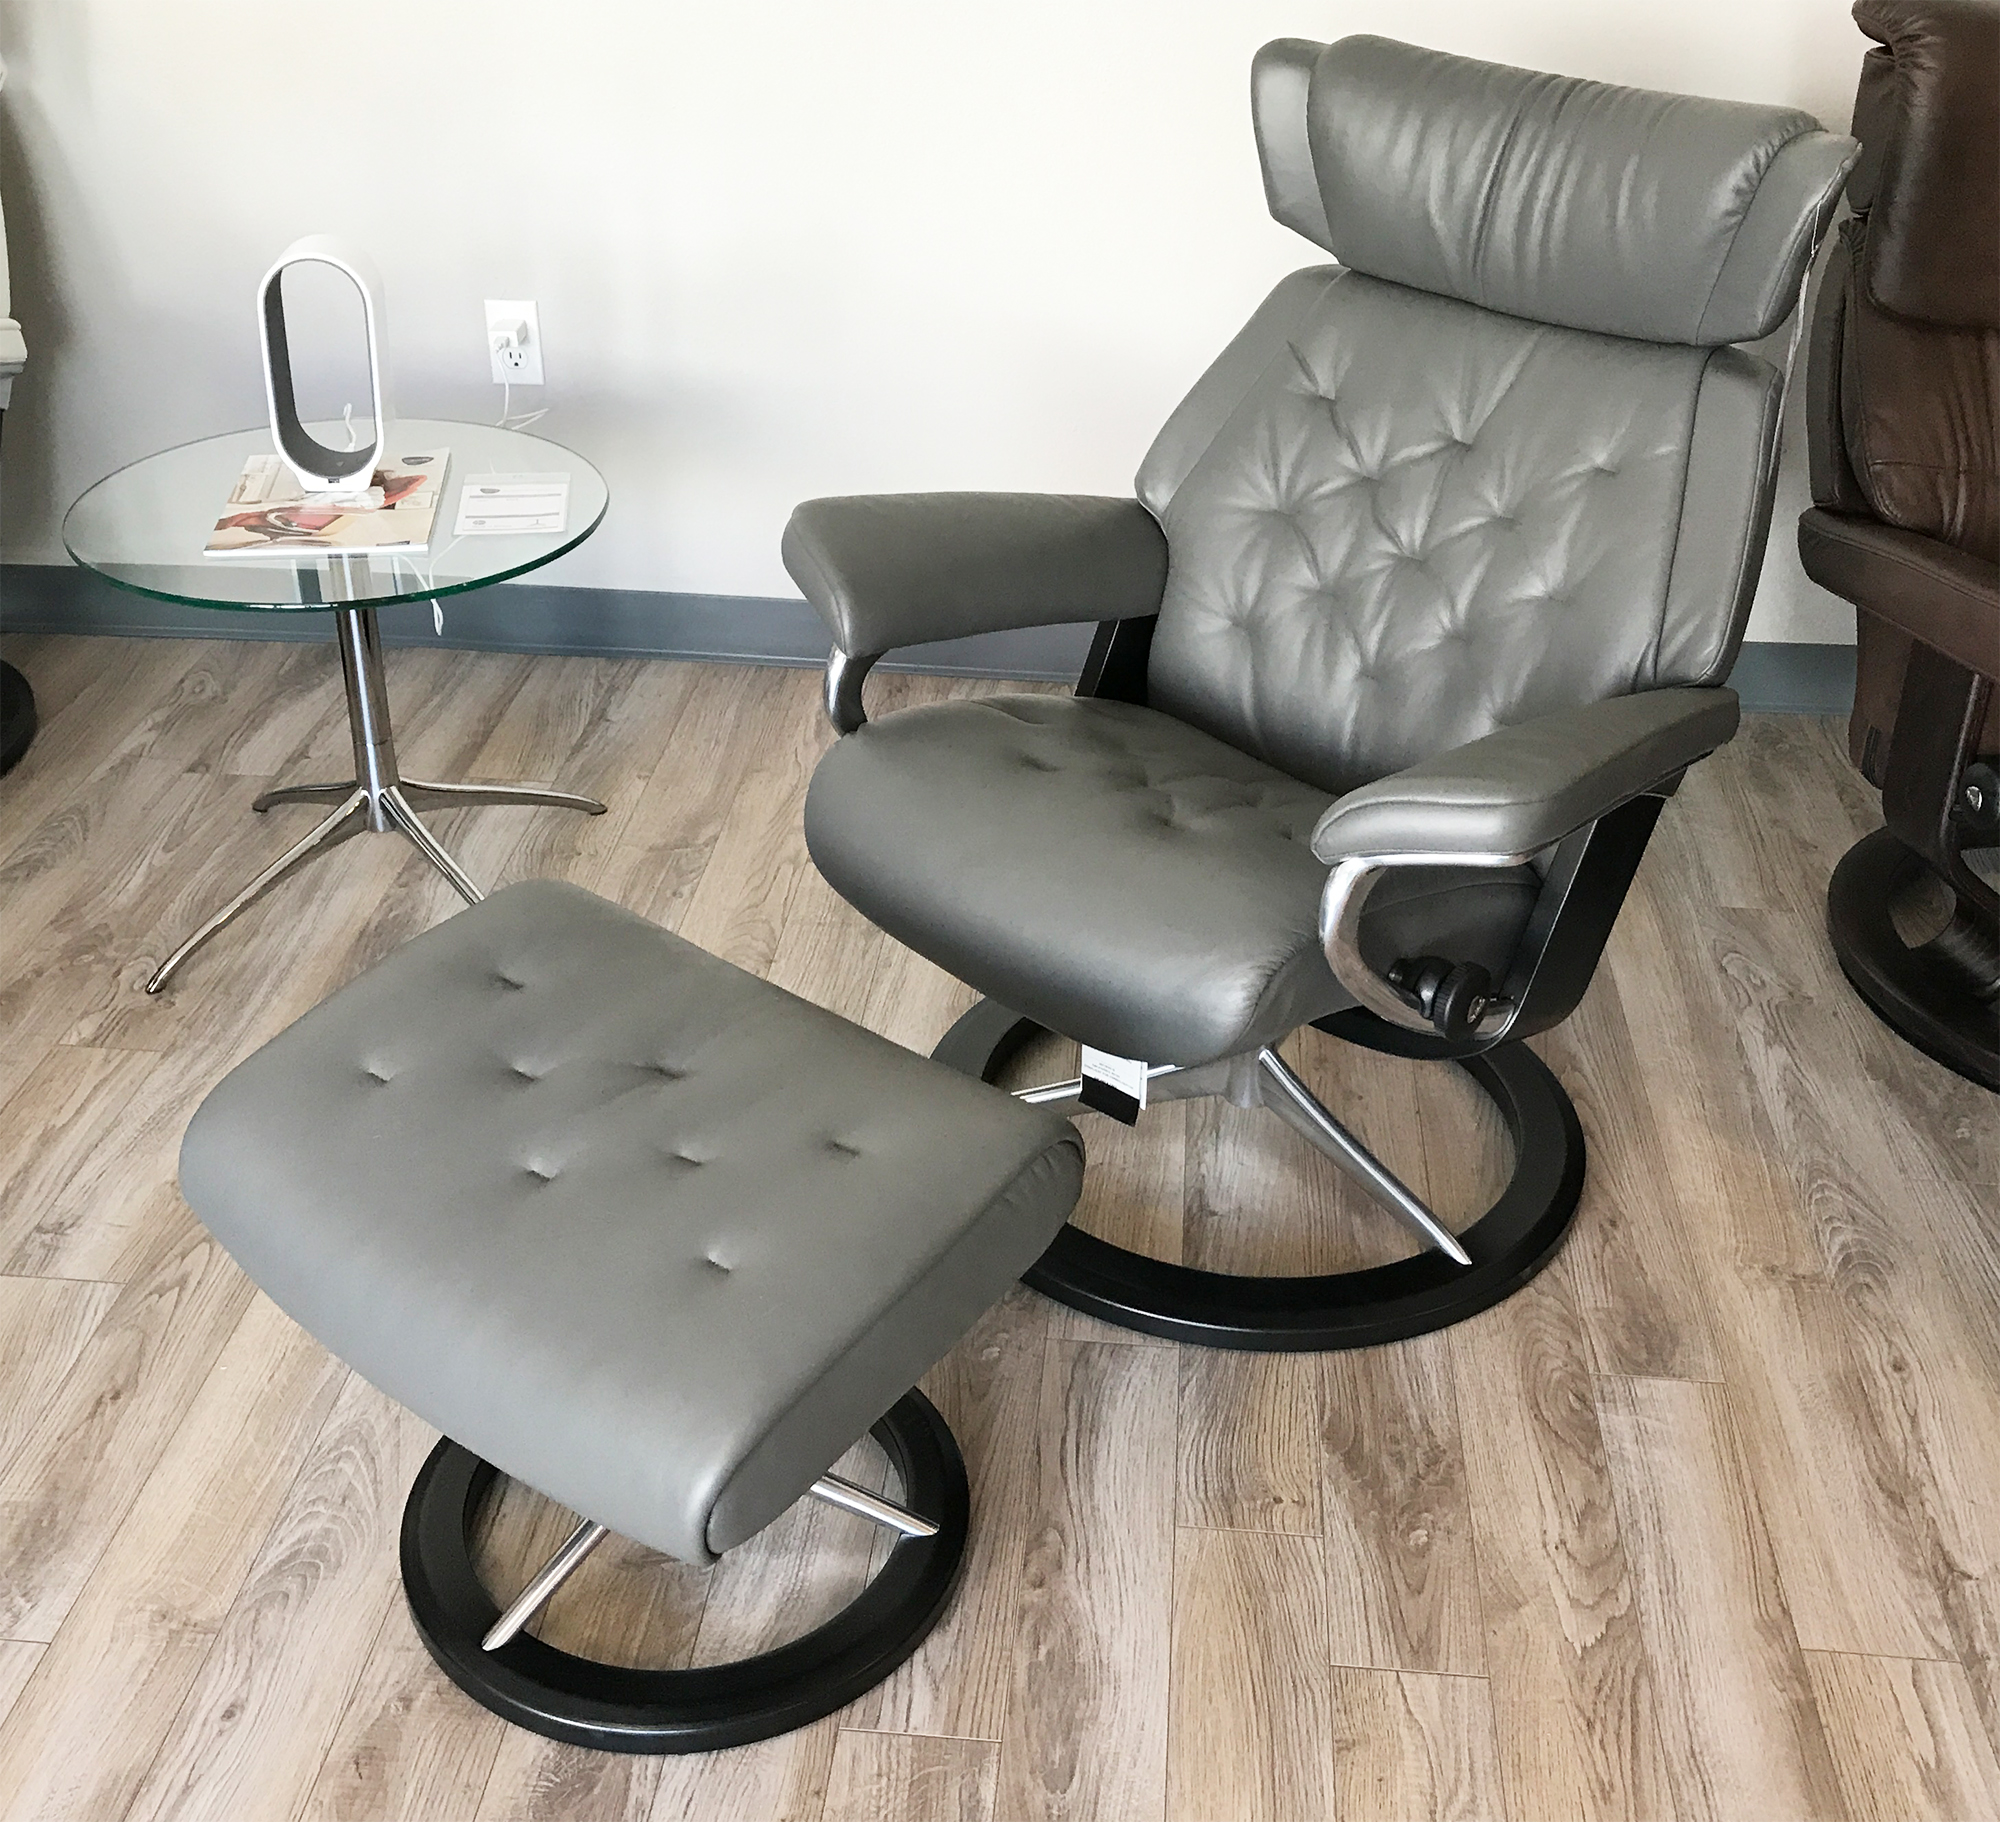 recliner chair with ottoman manufacturers leopard high heel stressless skyline signature base paloma metal grey